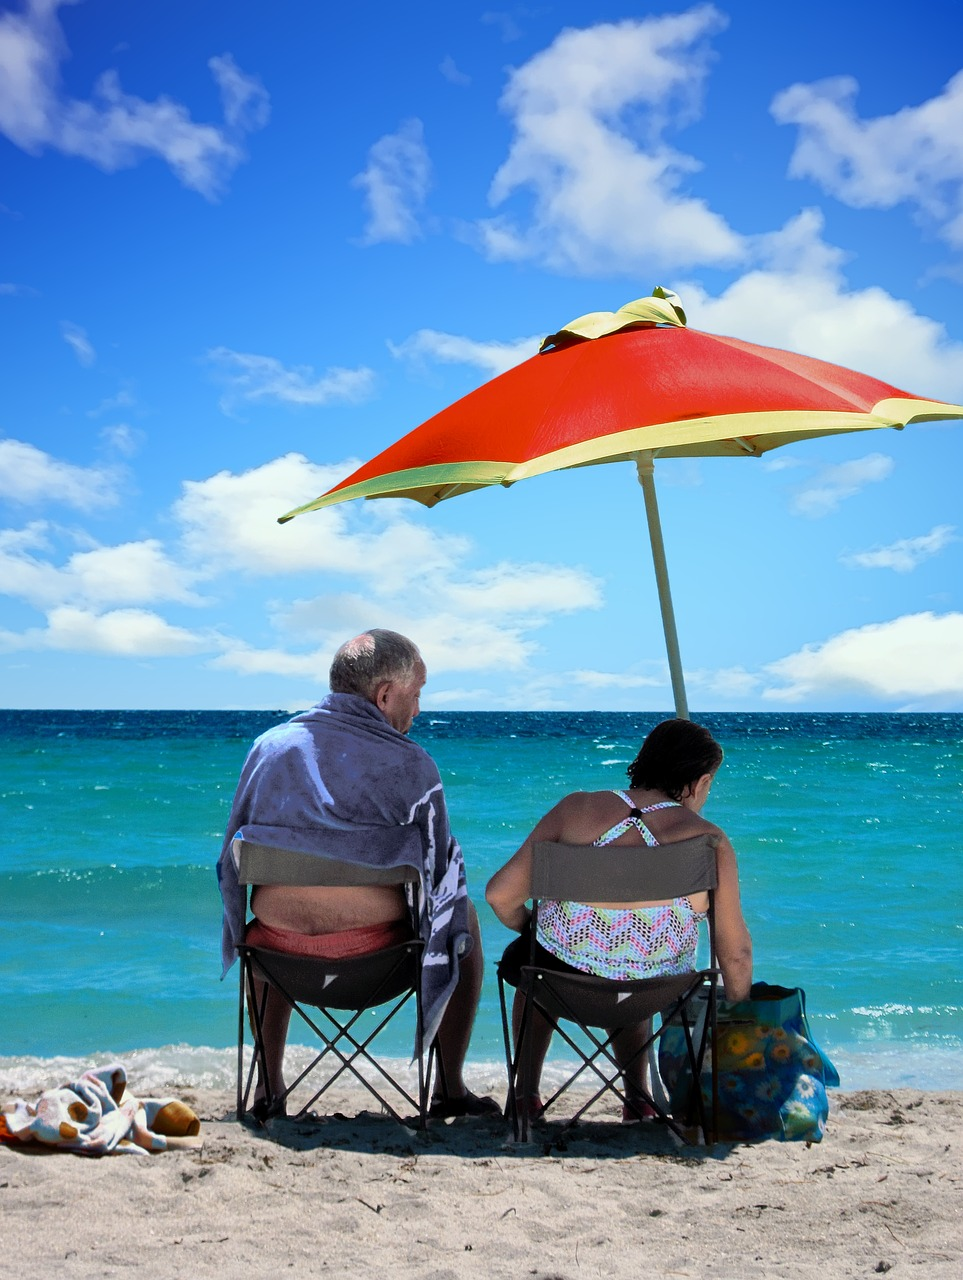 moving to florida guide for people looking to relocate